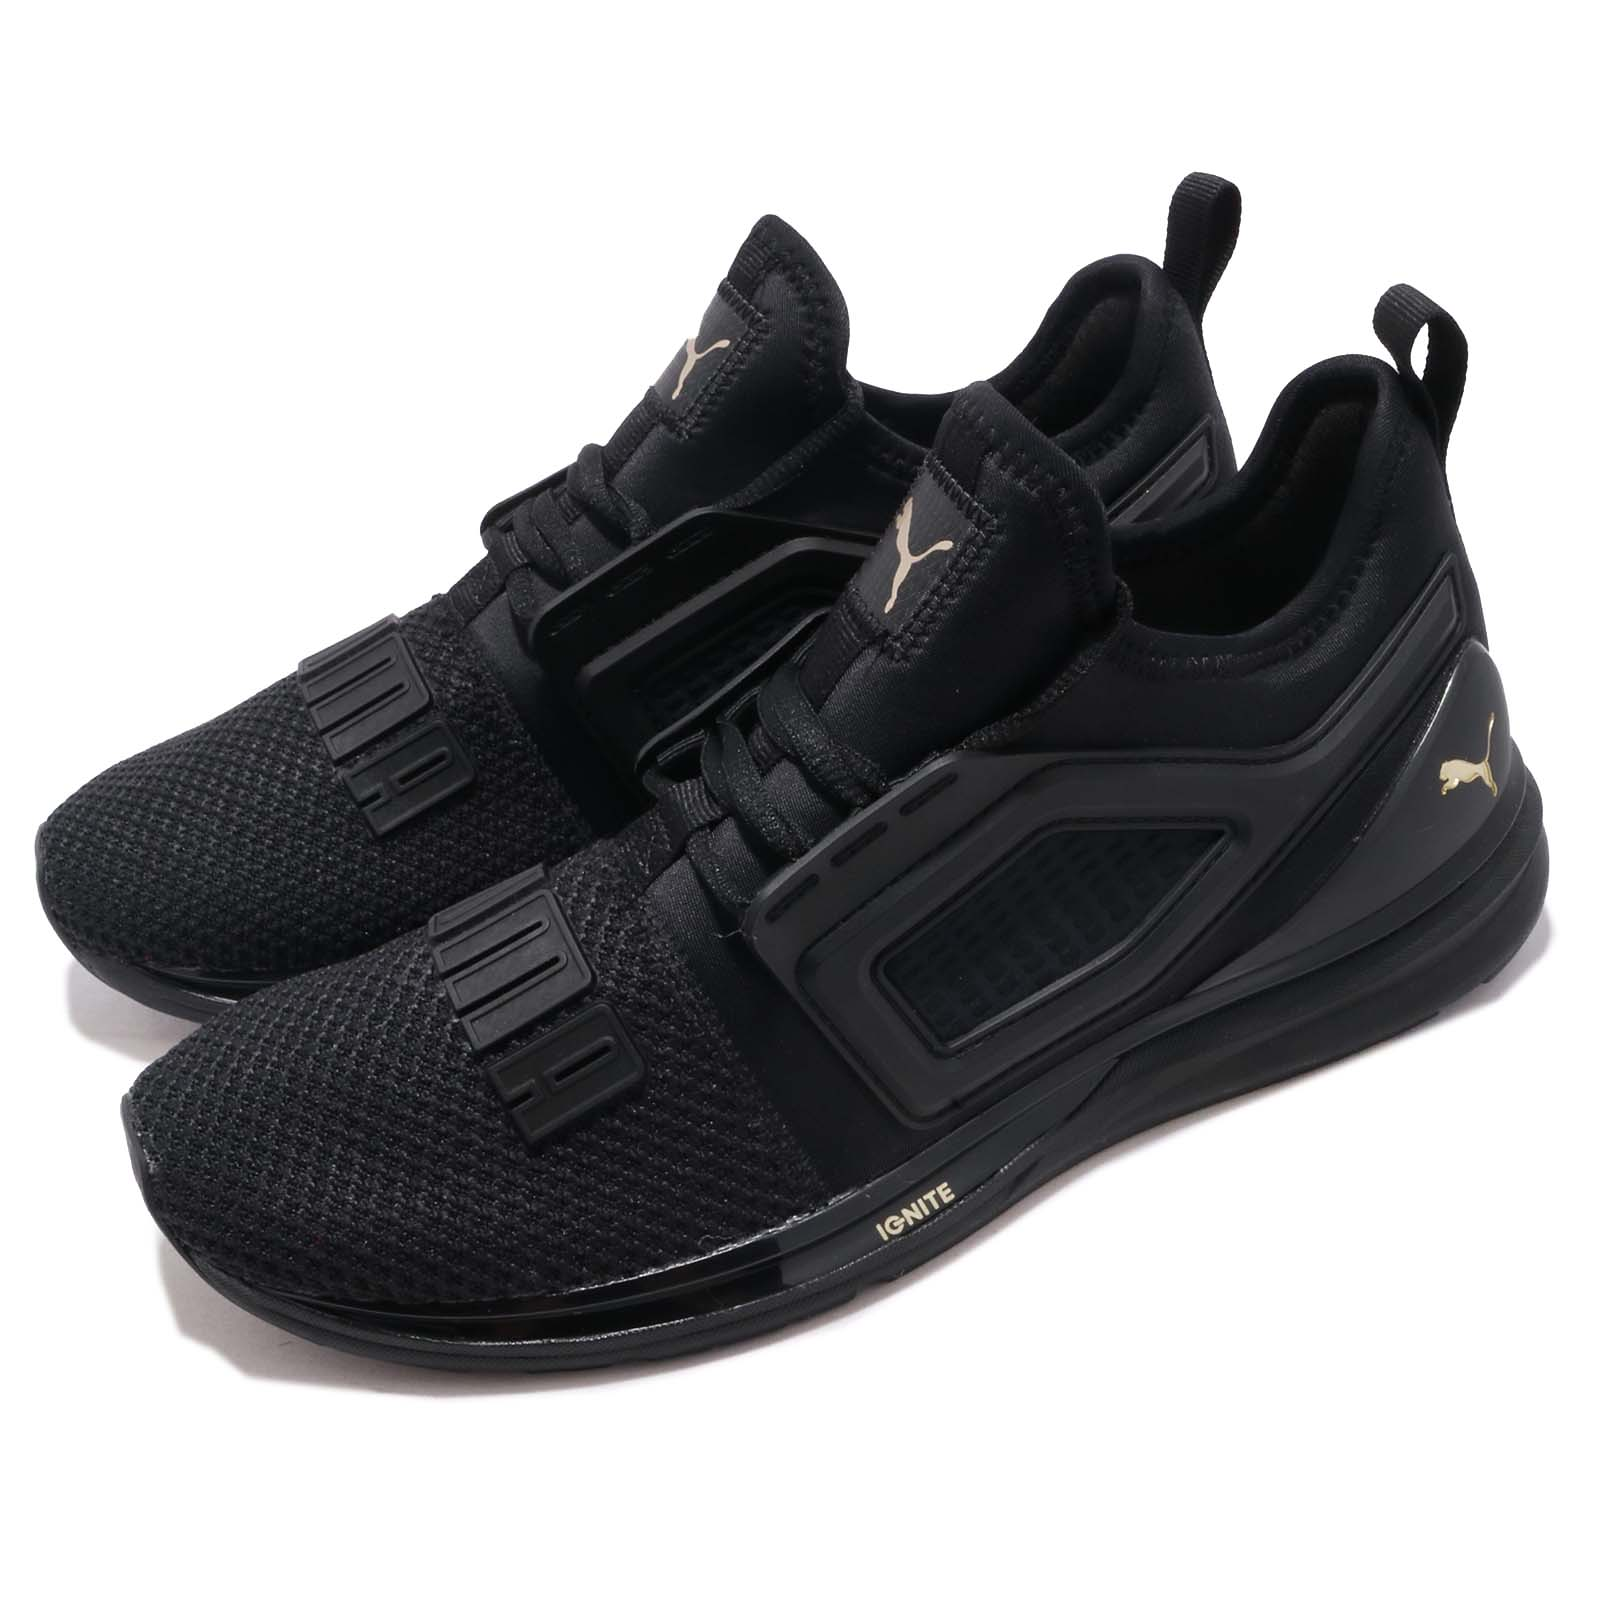 buy online fc048 817ef Details about Puma Ignite Limitless 2 Black Gold Men Running Casual Shoes  Sneakers 191293-10